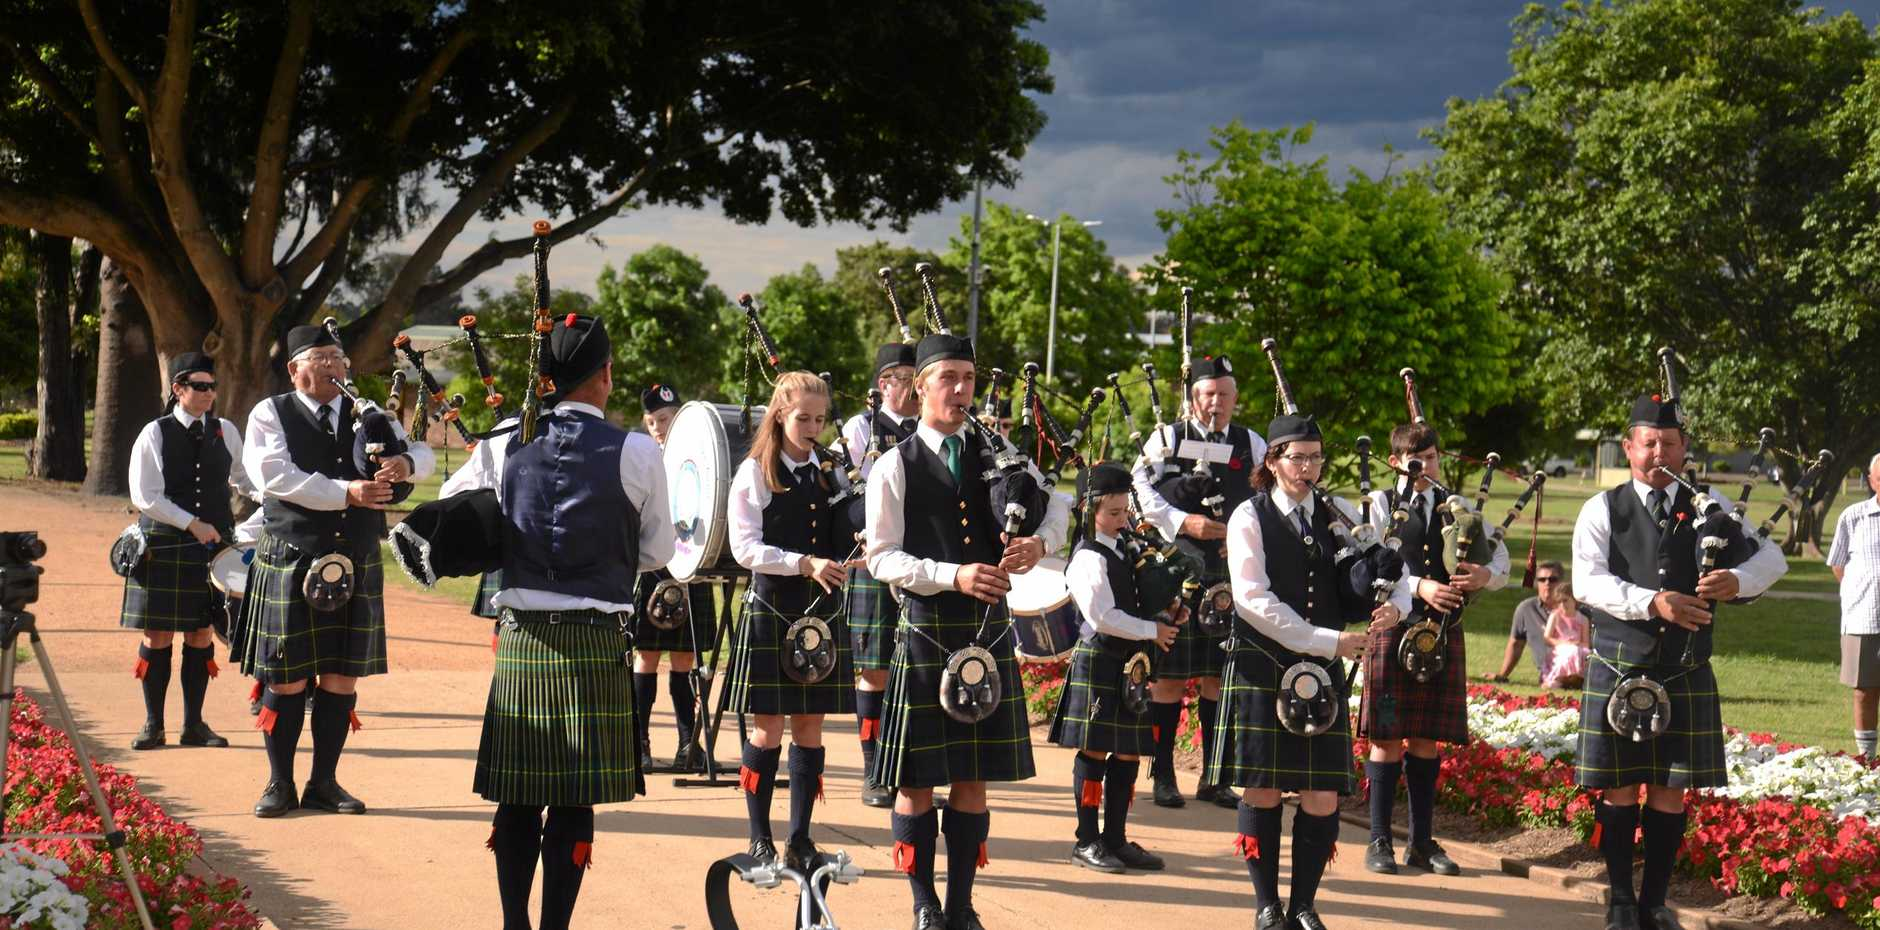 The Warwick Thistle Pipe Band performs on Sunday afternoon in Leslie Park.